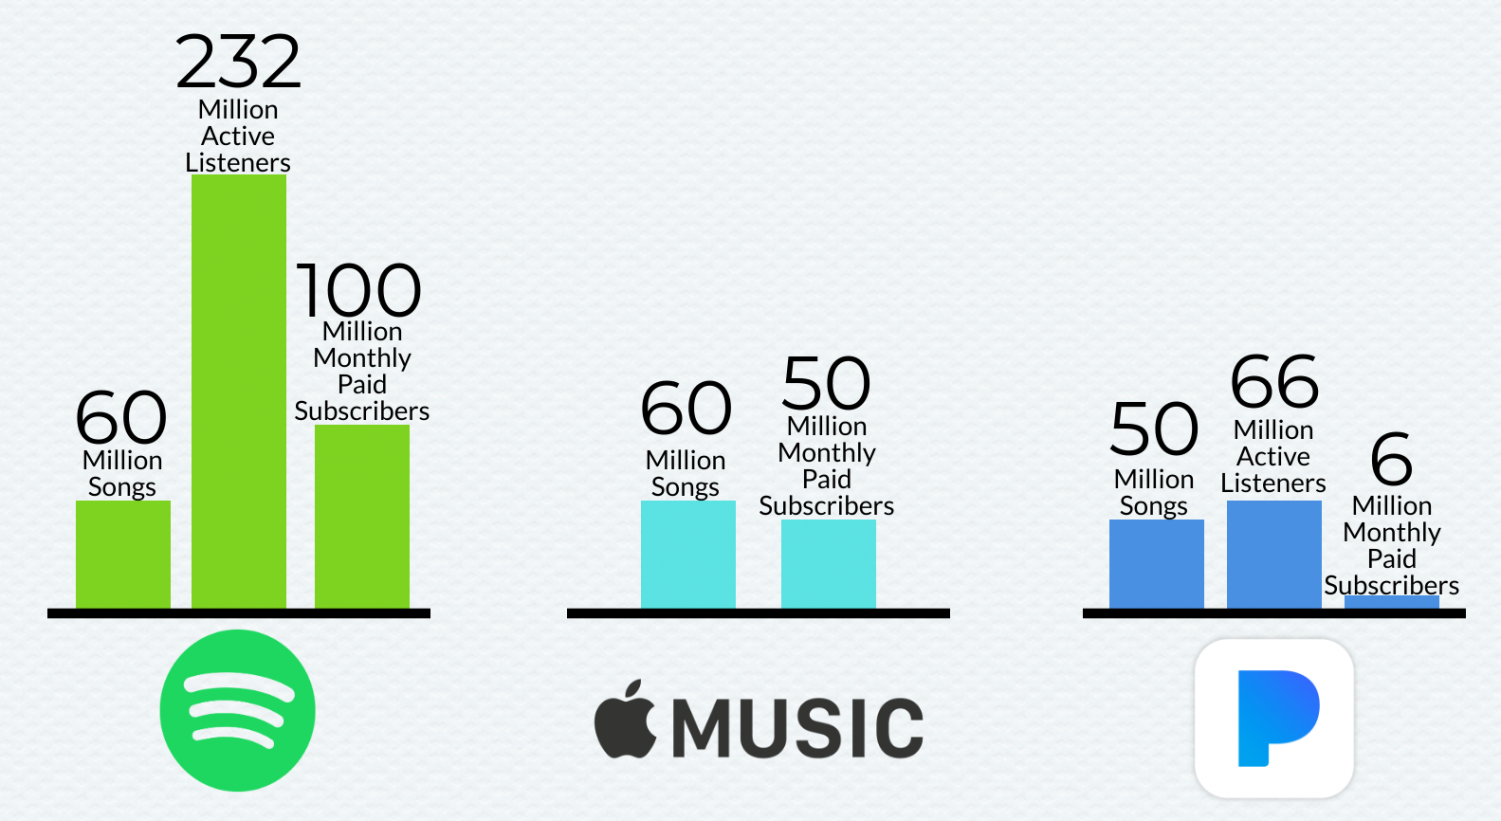 Song count, active listeners and monthly payers are some of the statistics that streaming platforms share. The above infographic compares three of the biggest streaming services: Spotify, Apple Music and Pandora, respectively. Please note Apple Music does not have a free service outside of free trials, so the monthly paying users is the number of active users as well.